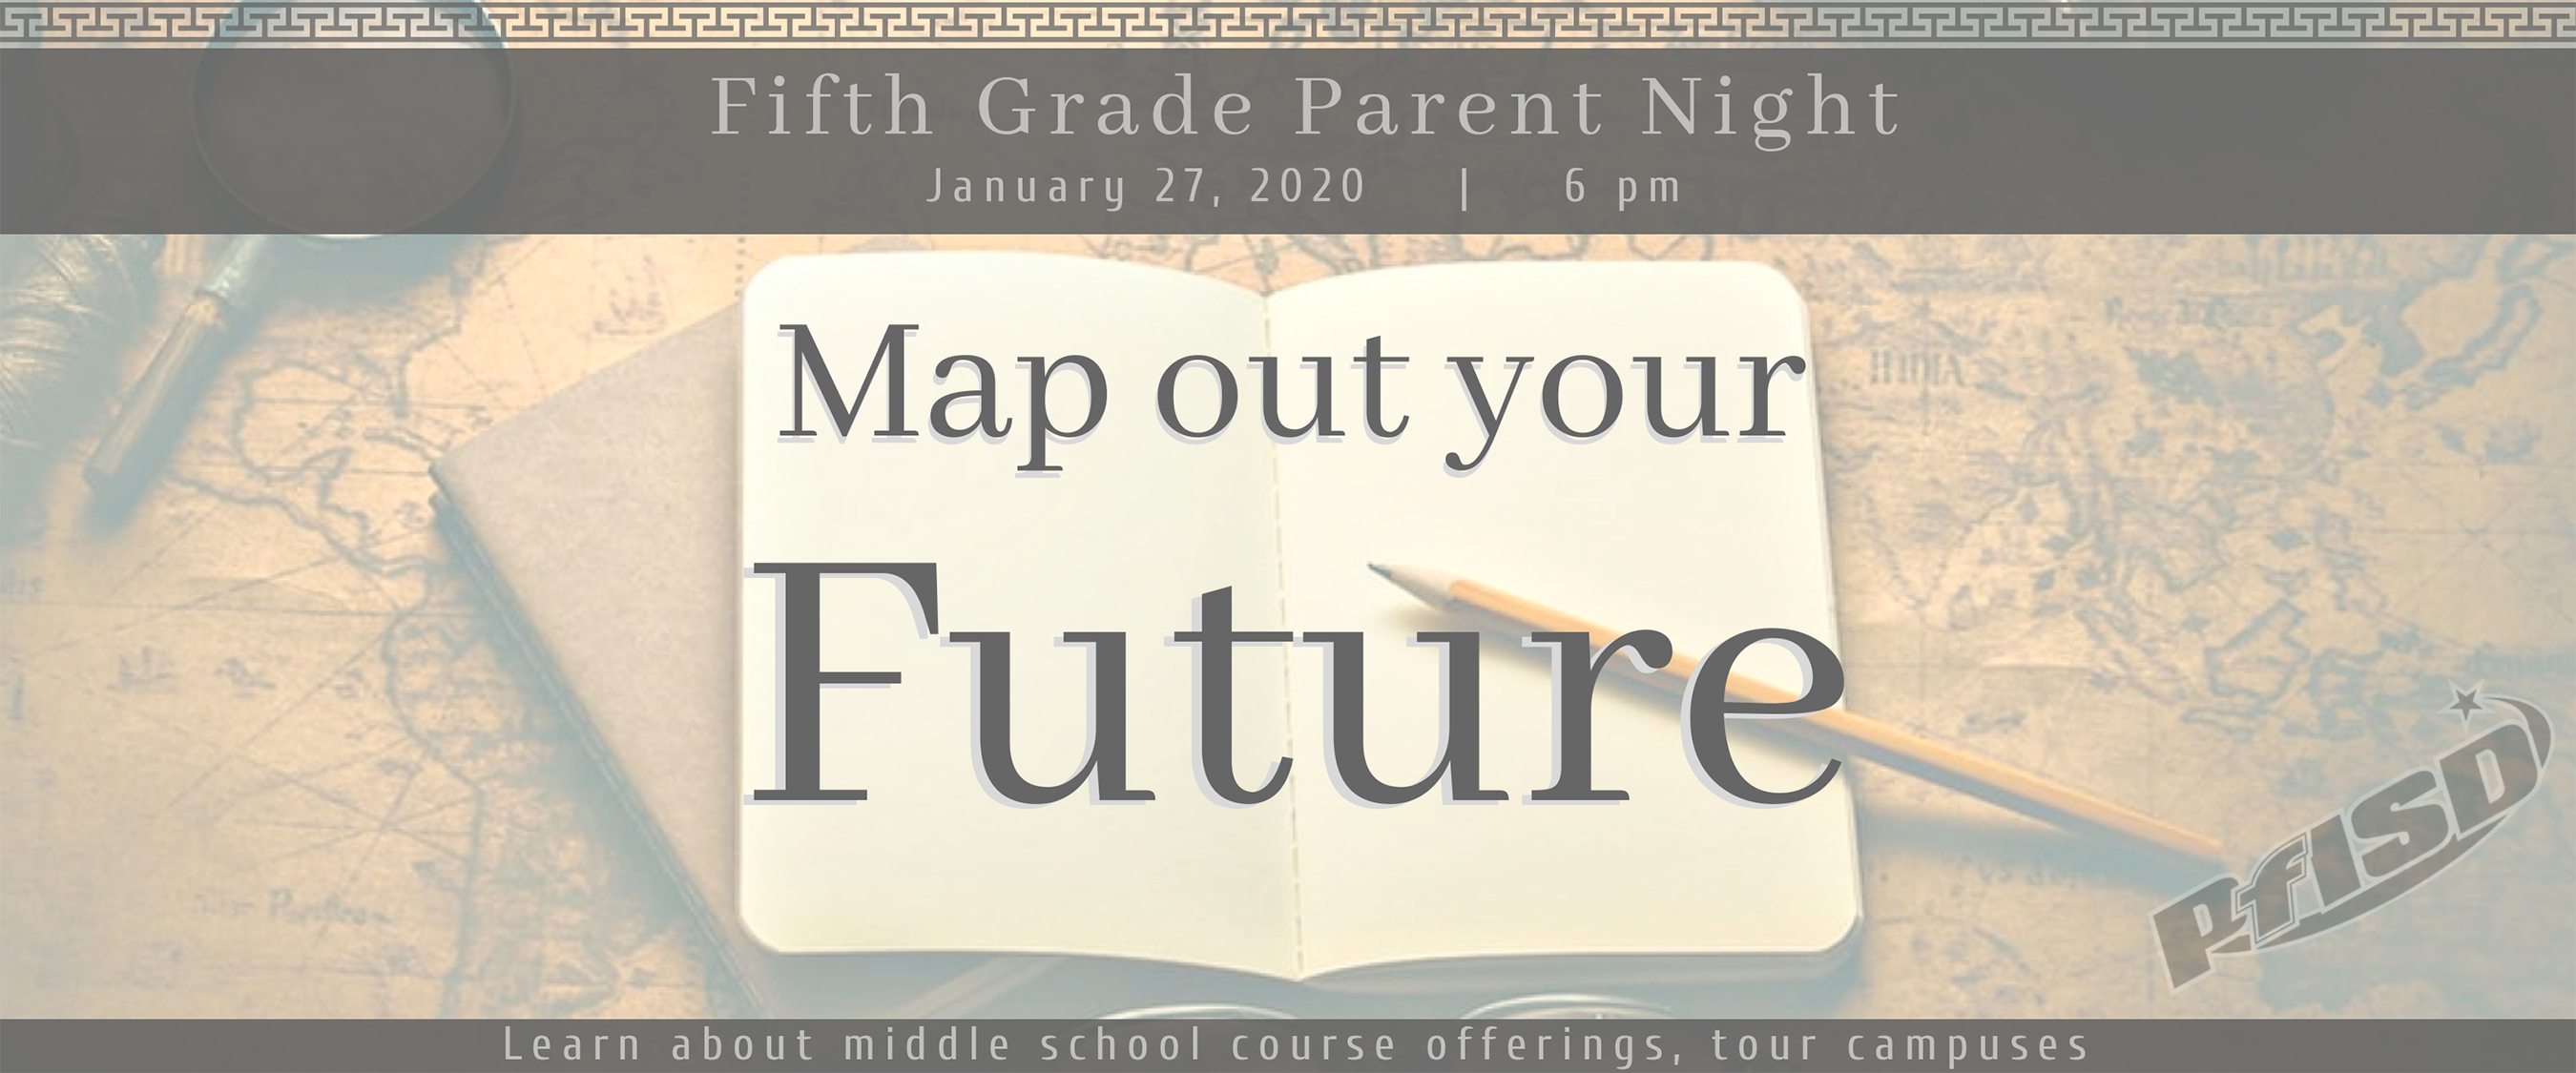 5th Grade Parent Night